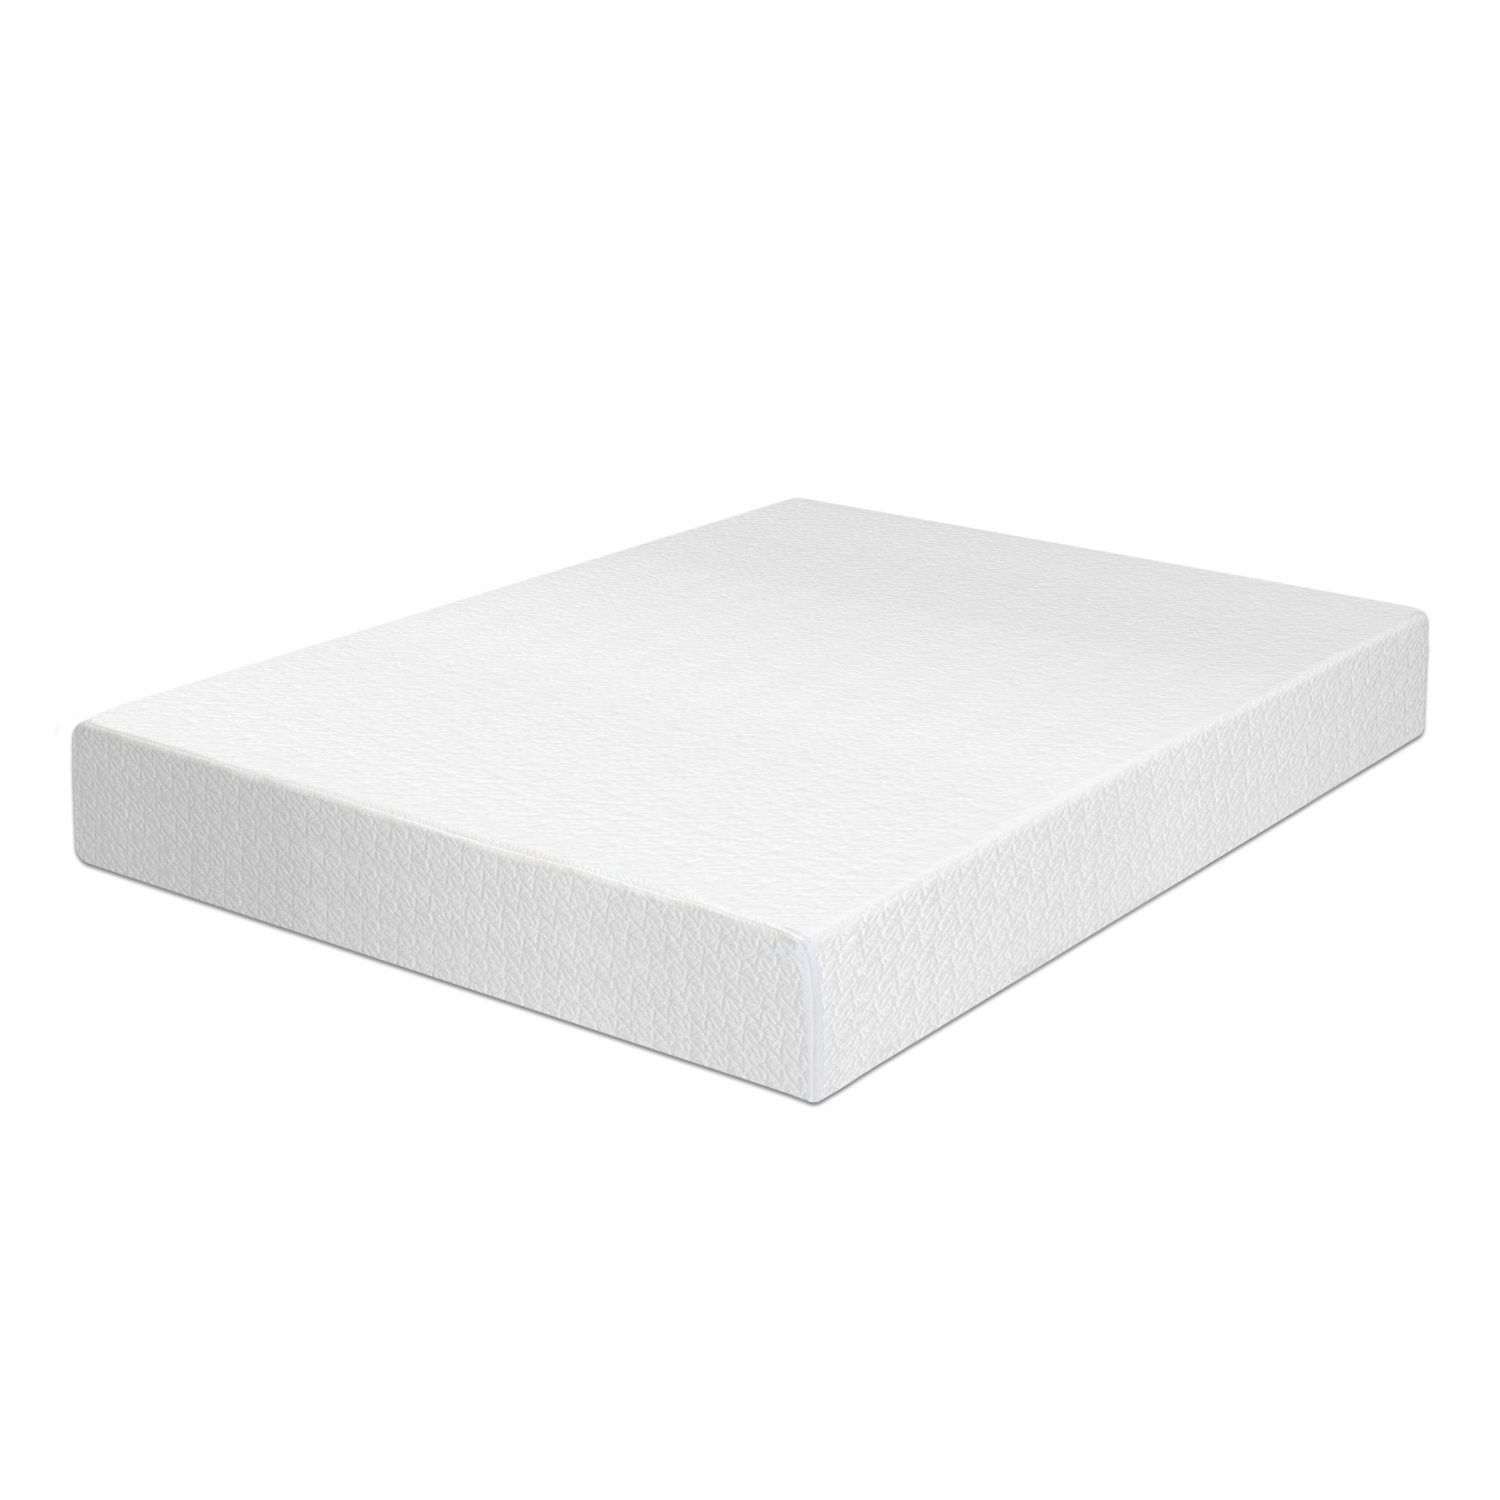 17 best images about top best rated seller queen size mattress on pinterest pressure points new year deals and wool - Therapeutic Mattress